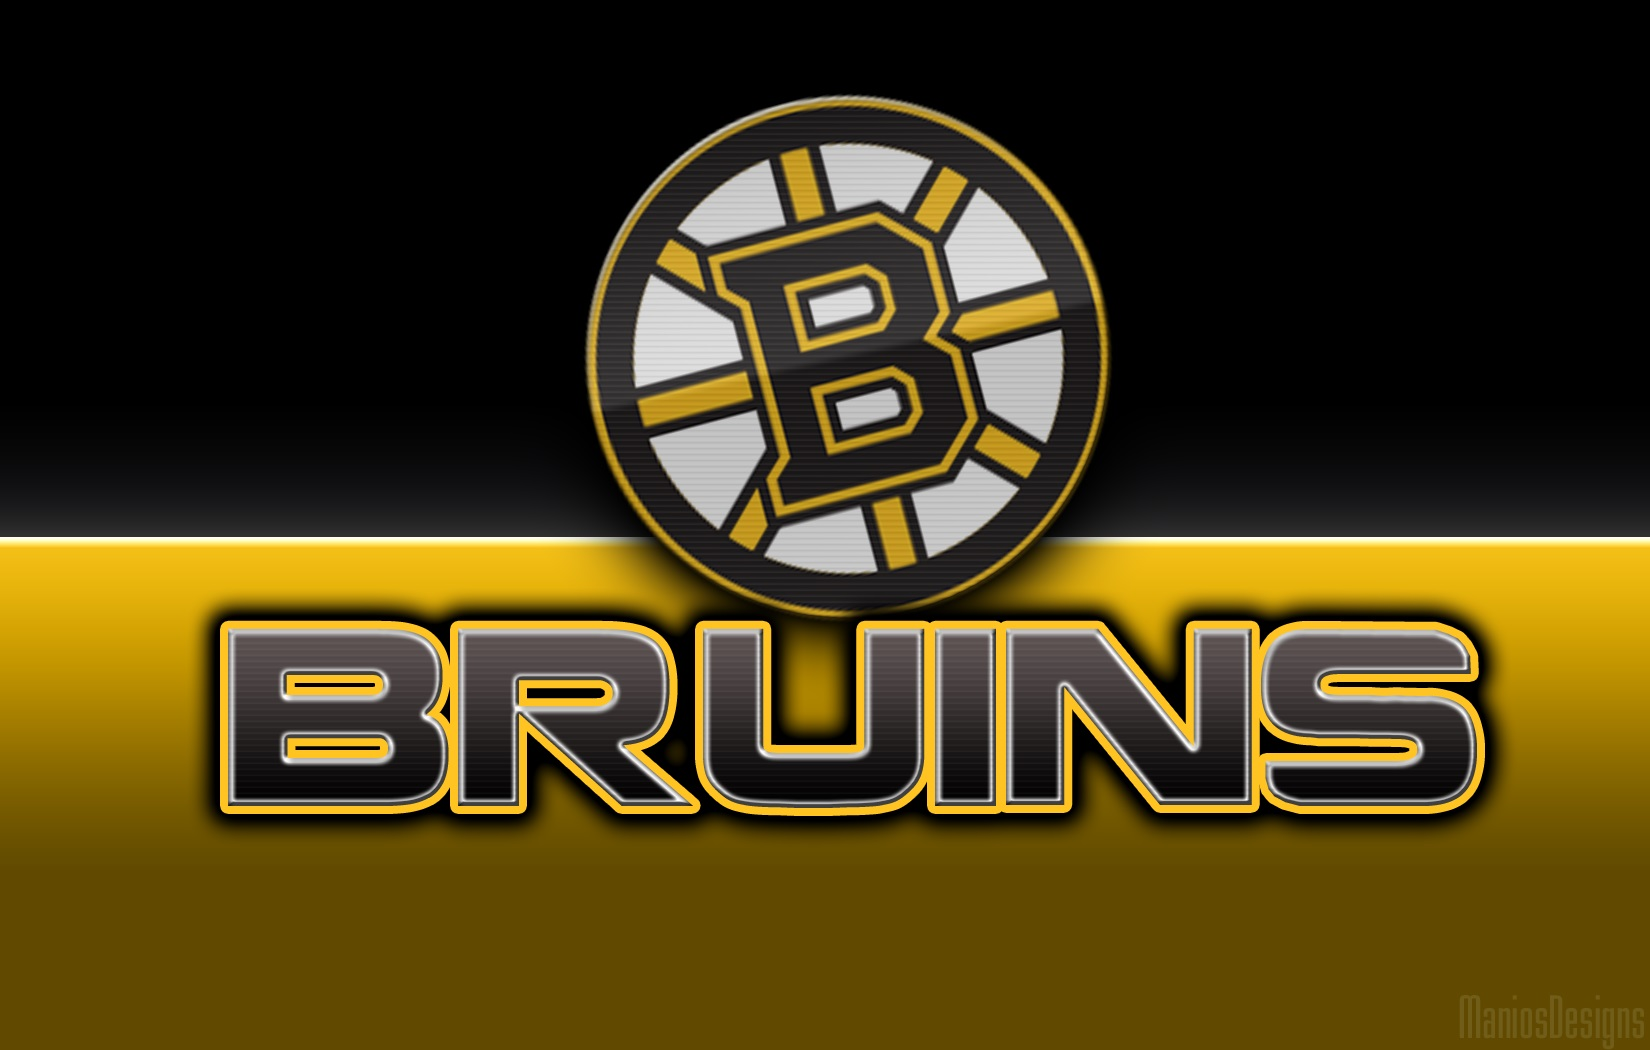 Share This Awesome Nhl Hockey Wallpaper On Facebook picture 1650x1050